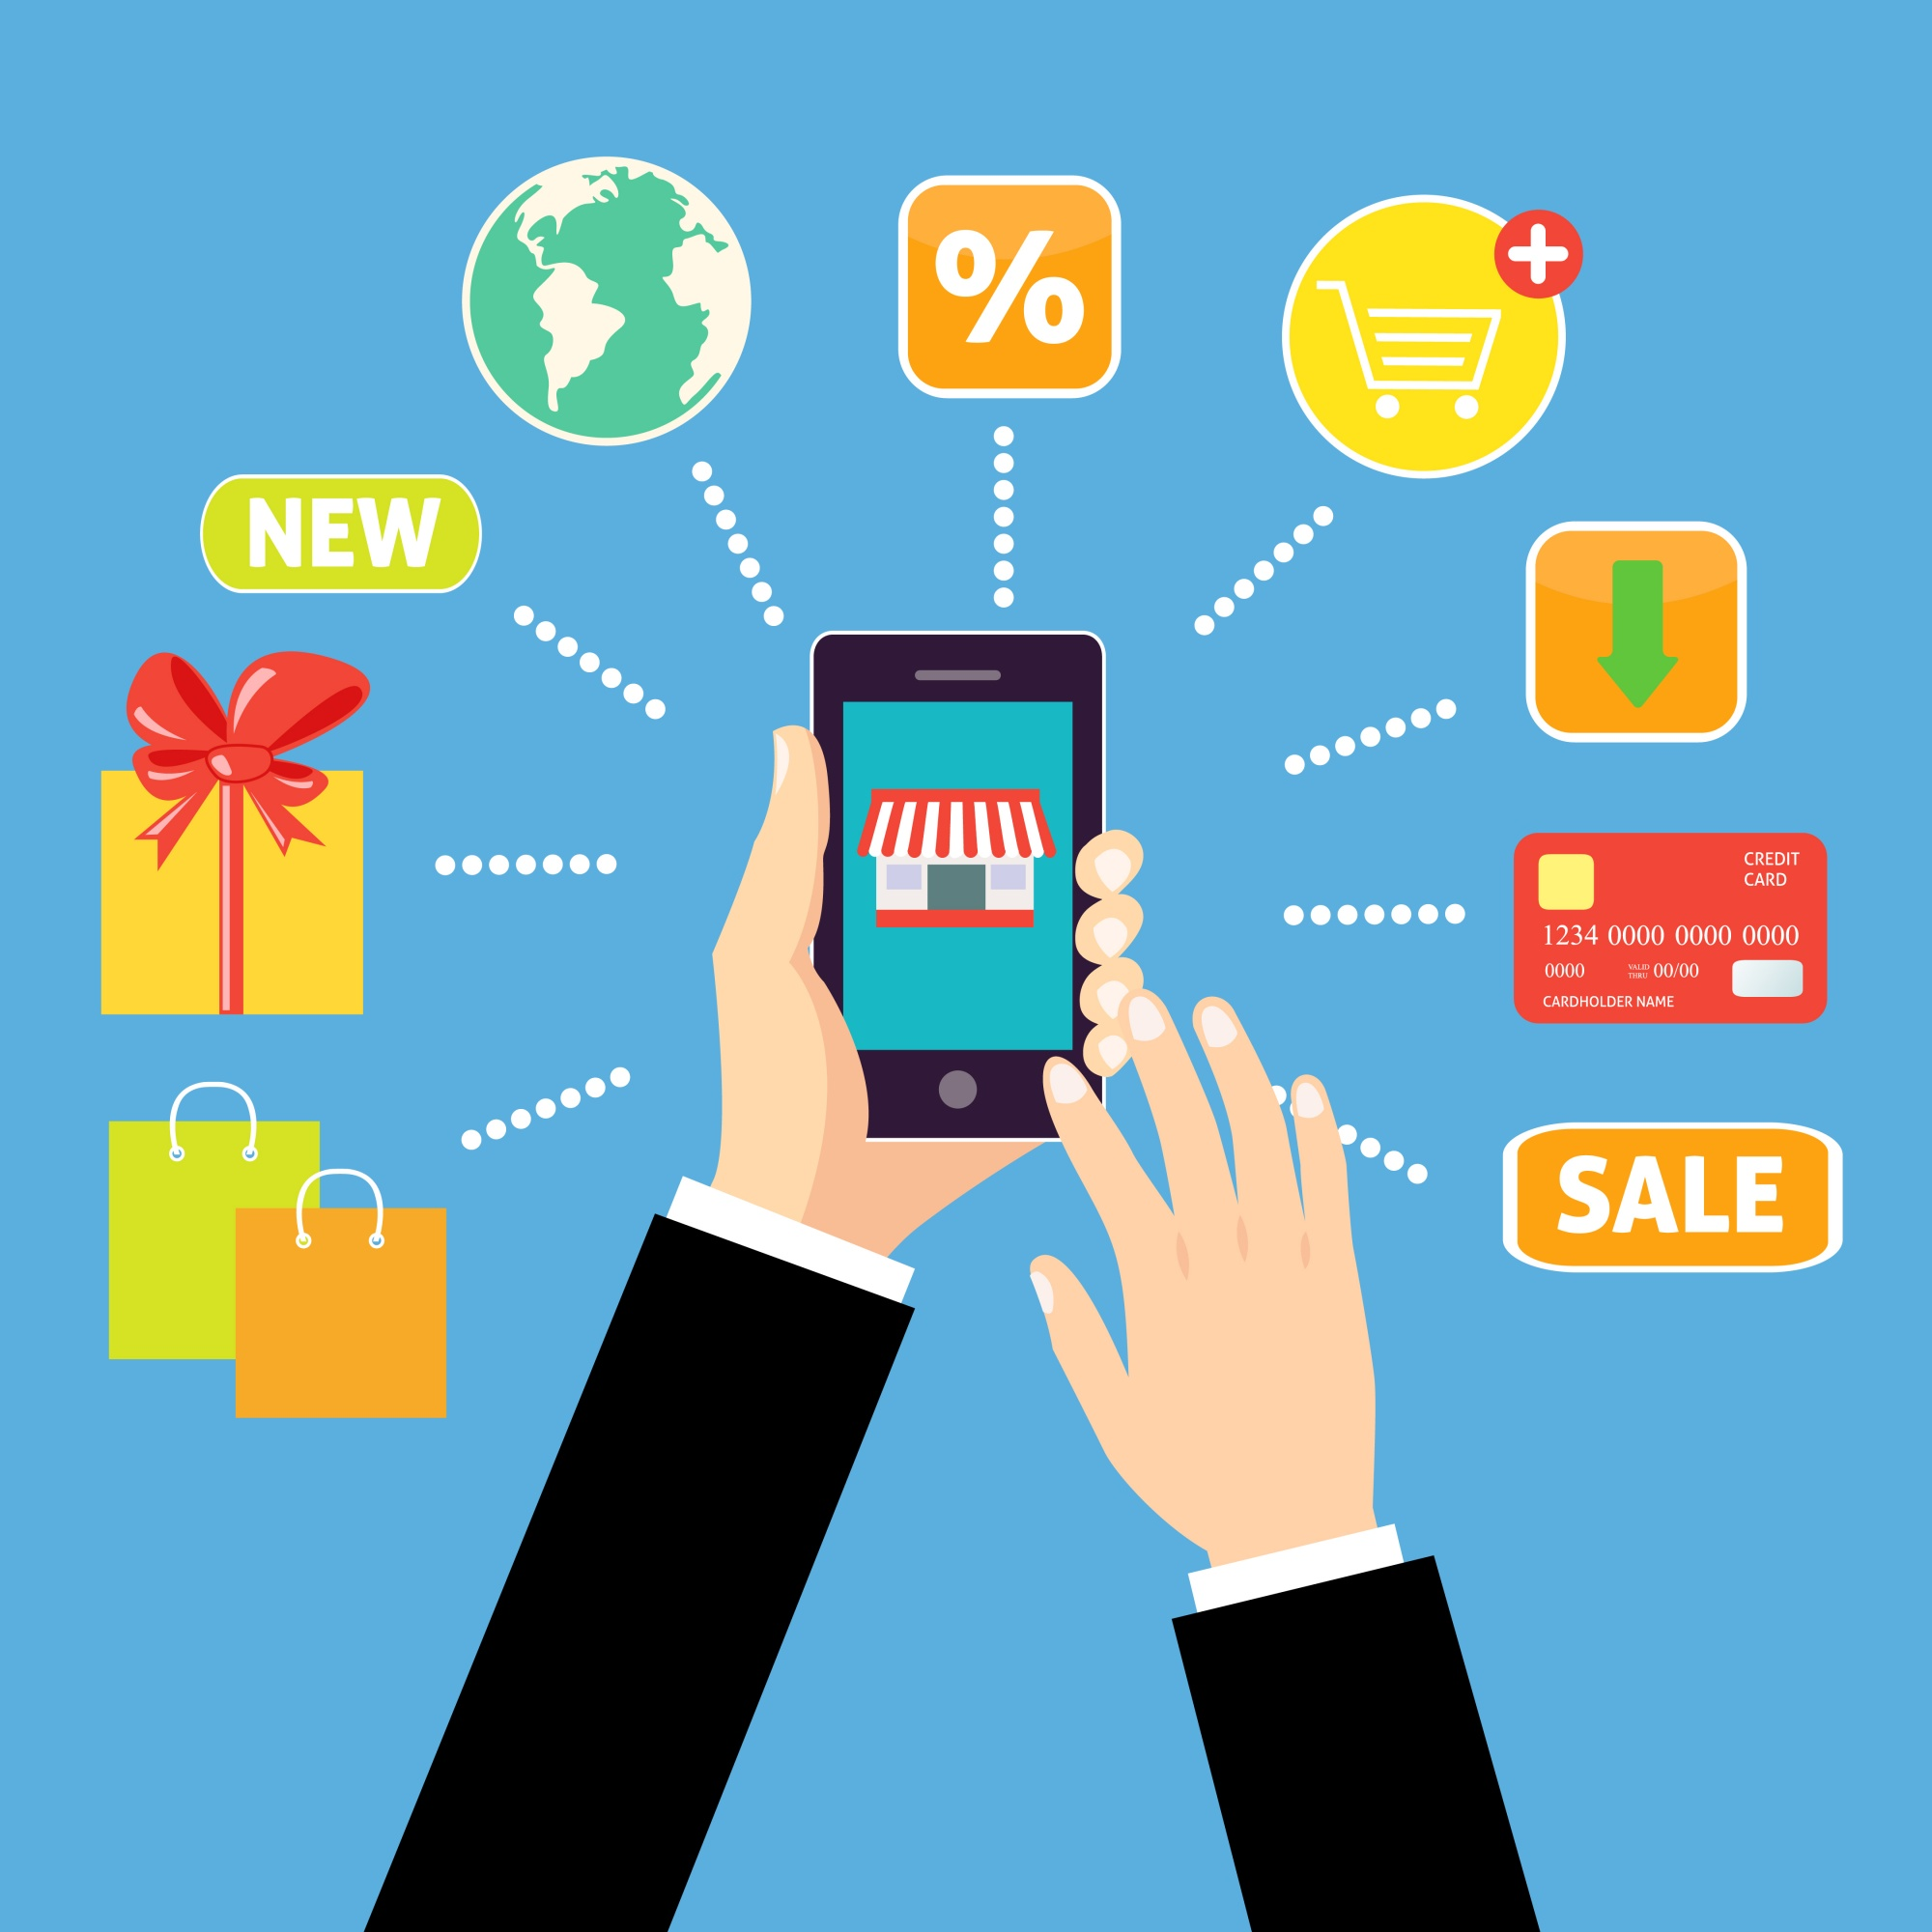 Mobile application, services